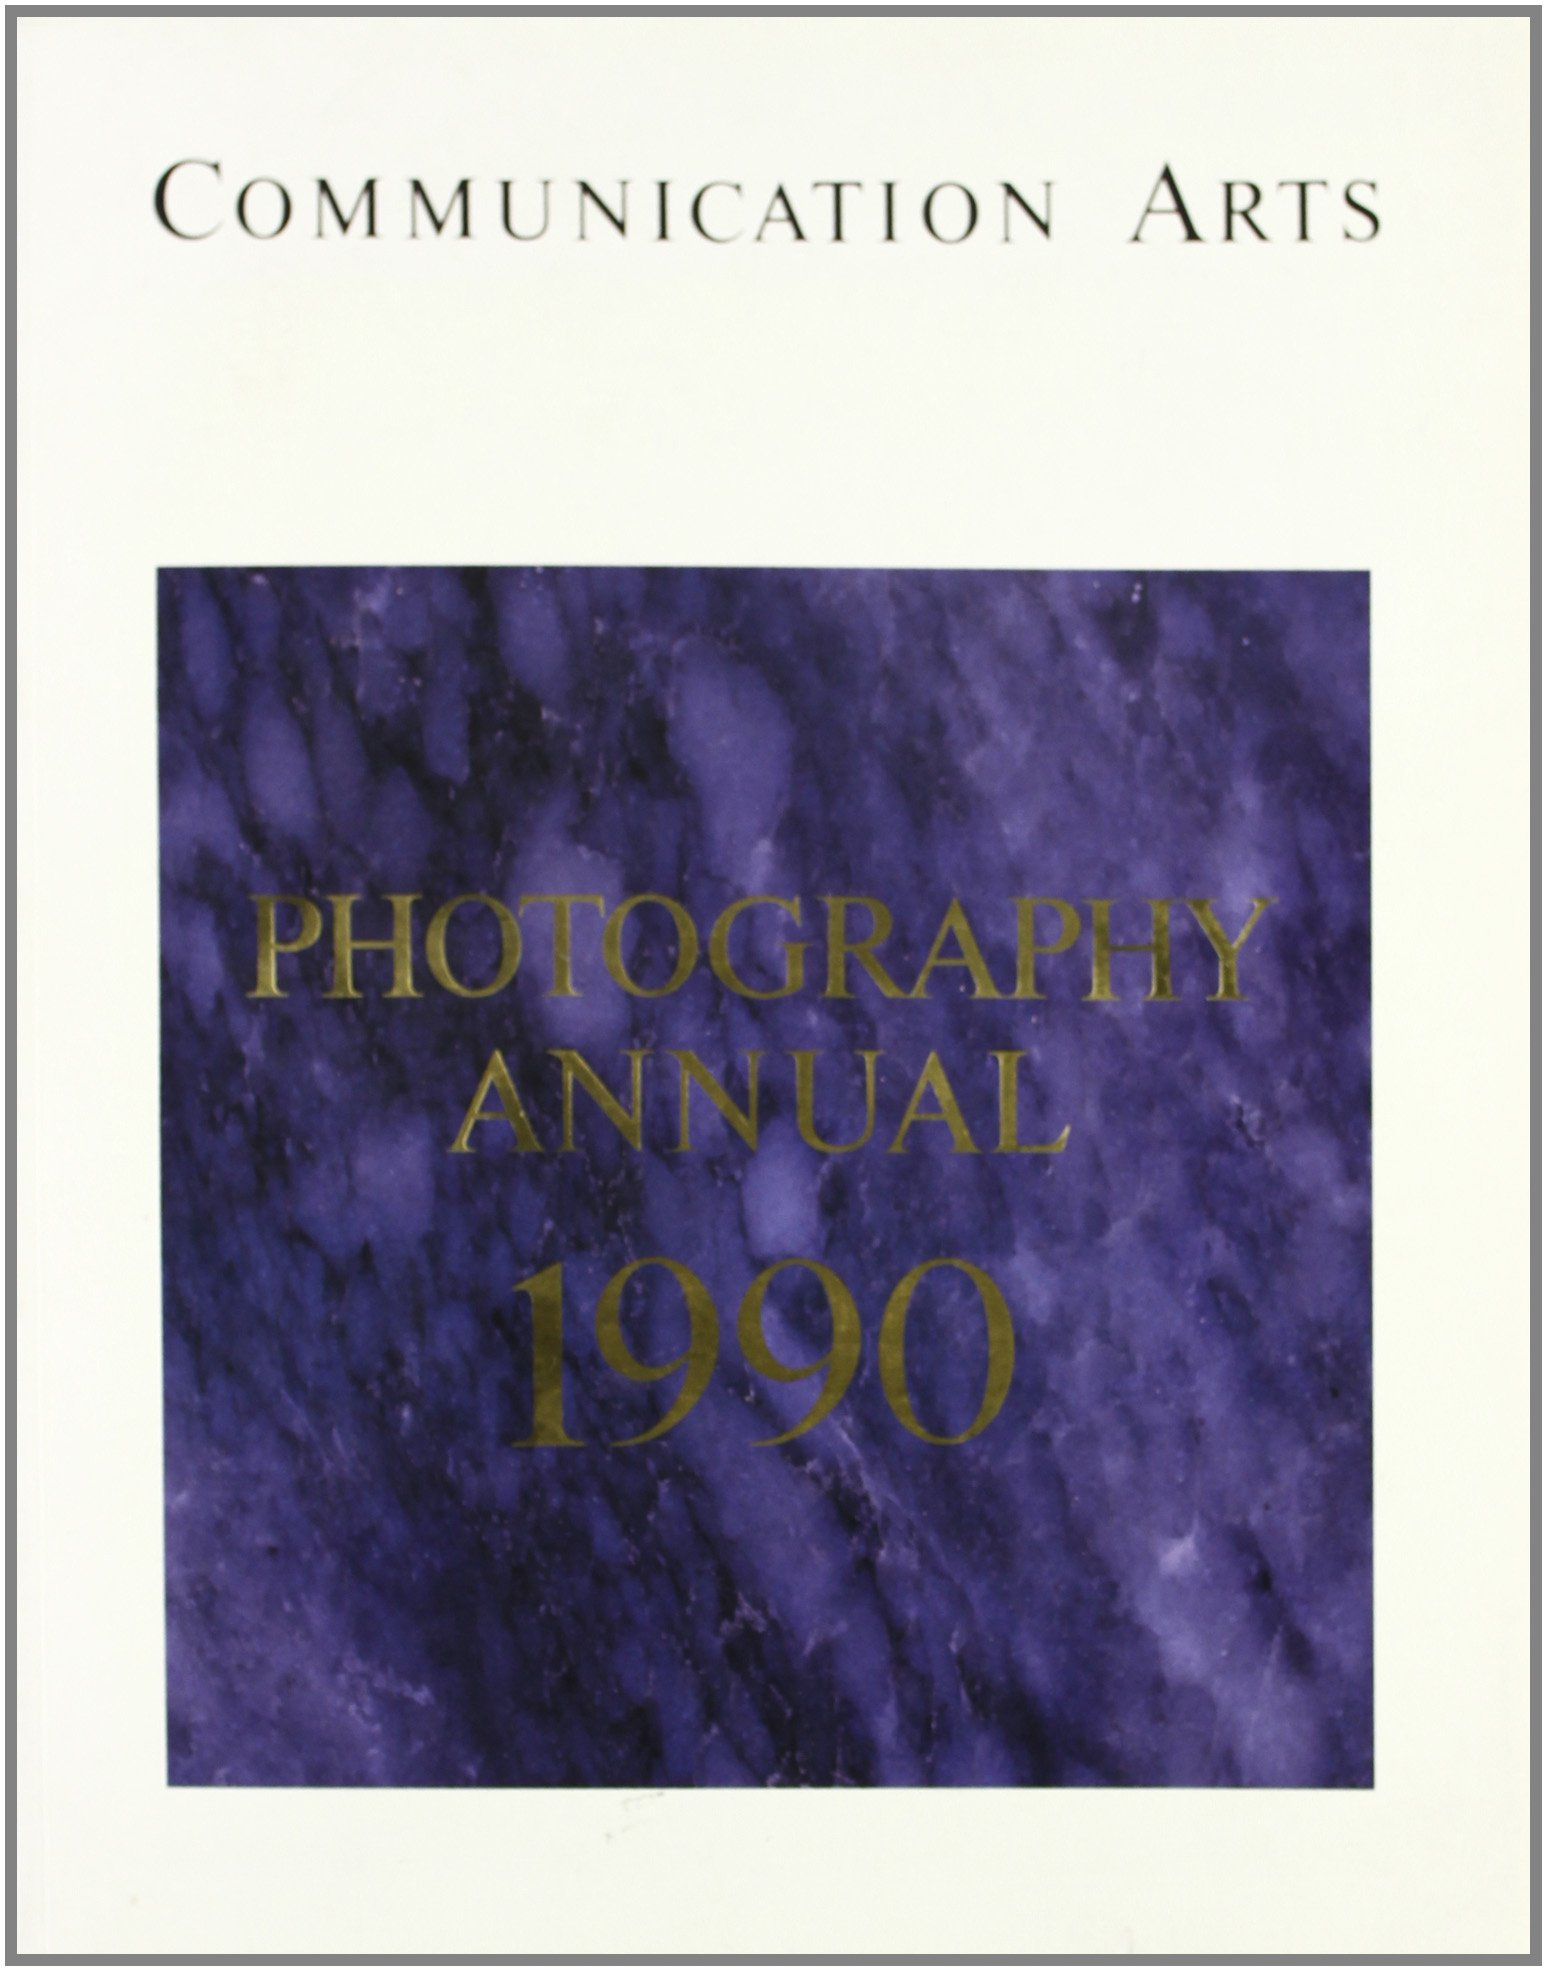 Communication Arts Photography Annual 1990